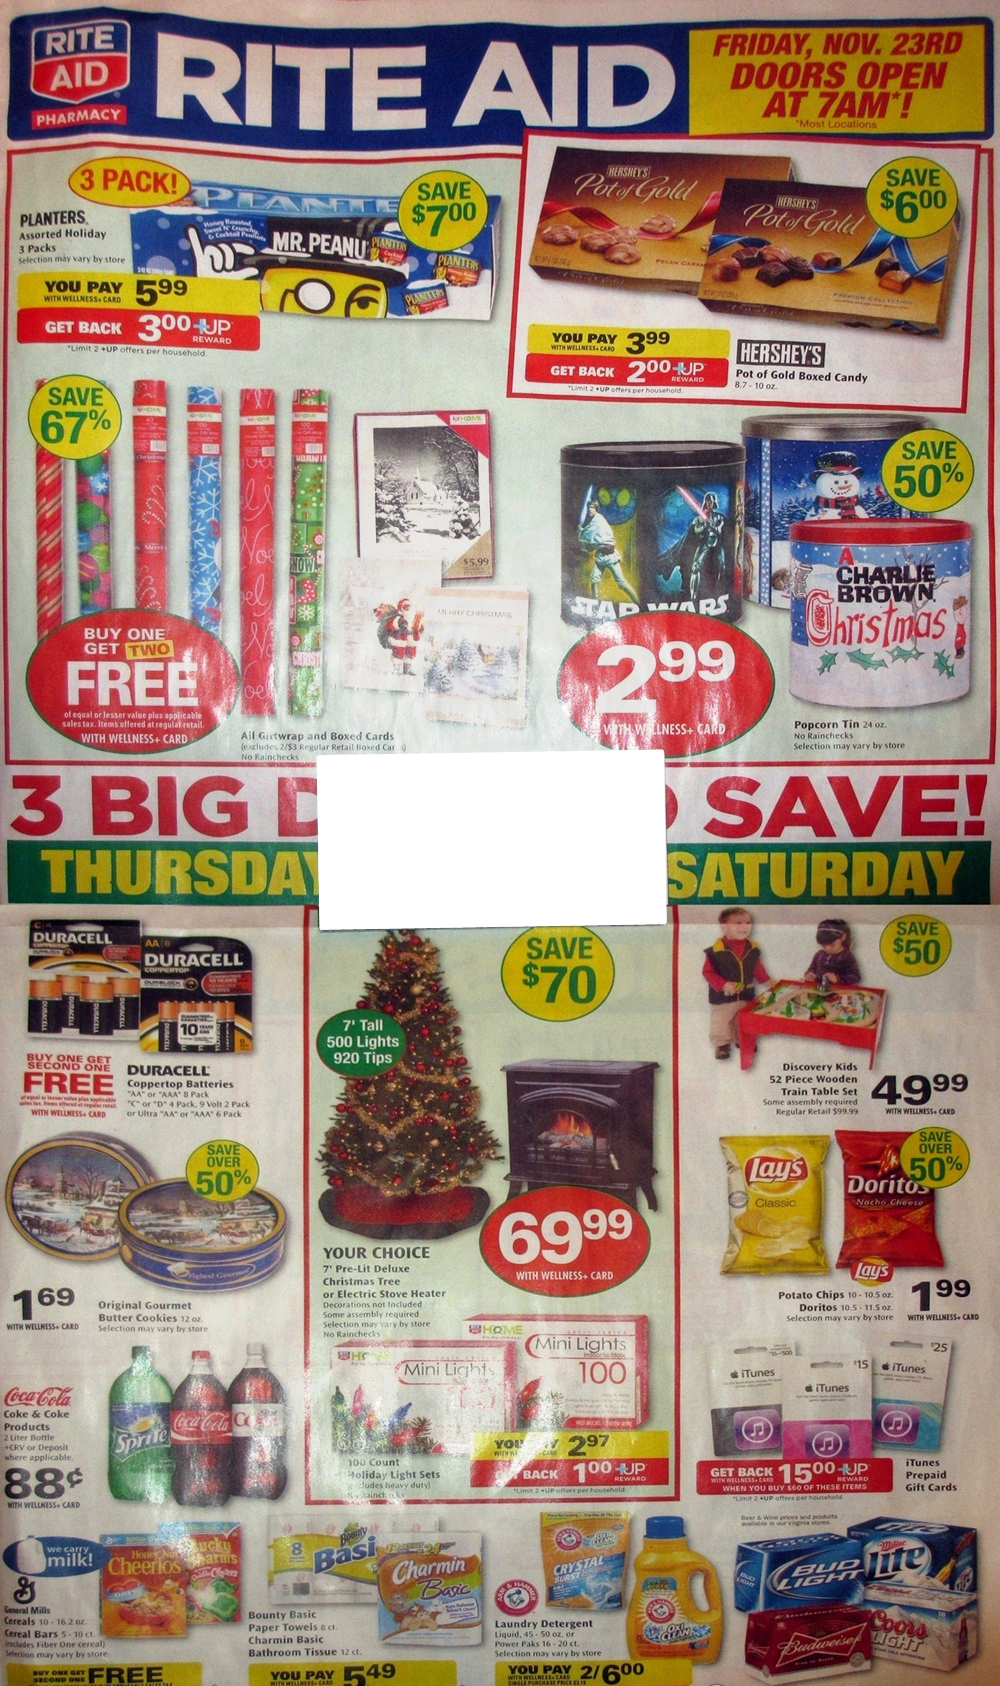 Rite Aid Black Friday 2012 Ad Scan 01